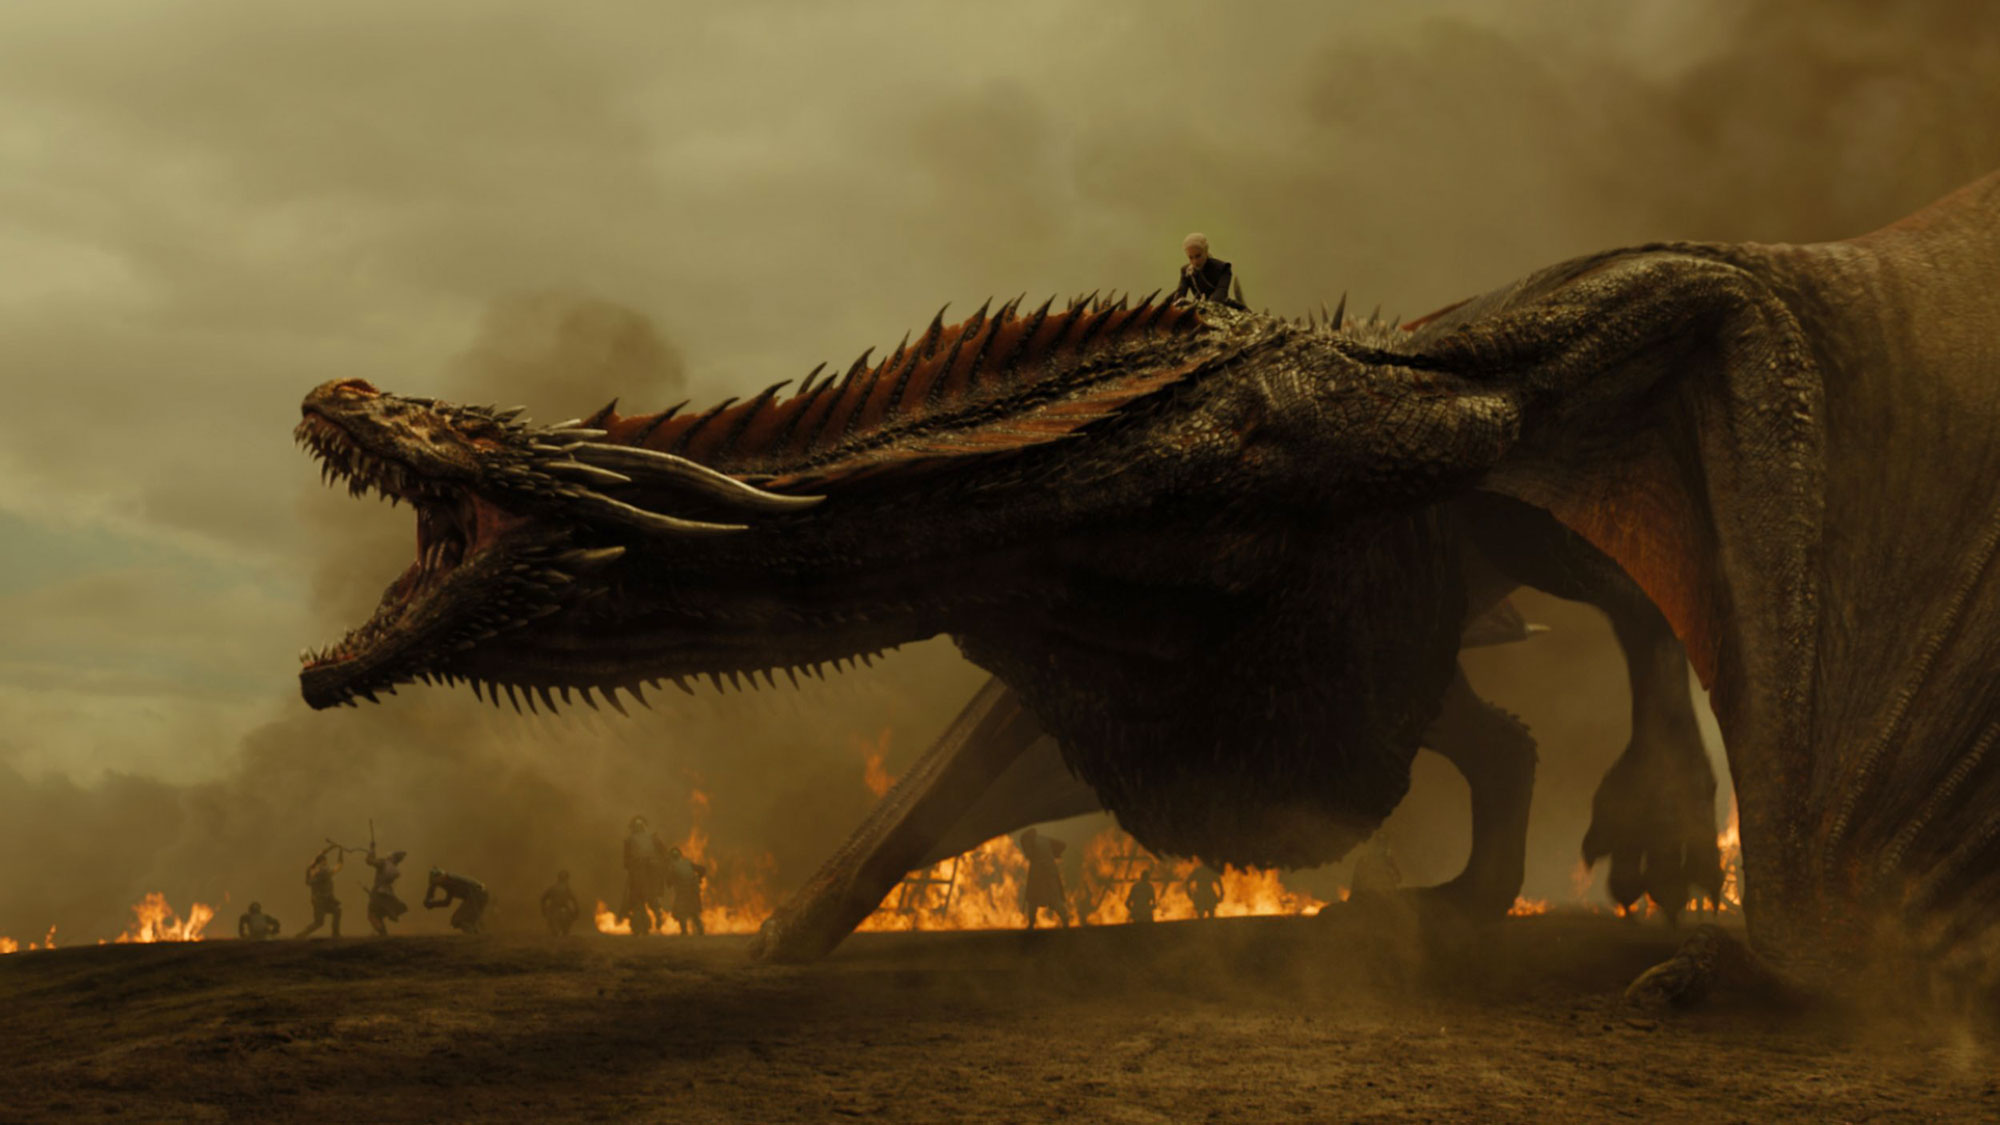 House of the Dragon: HBO release date, cast and more for the Game of Thrones prequel   Tom's Guide